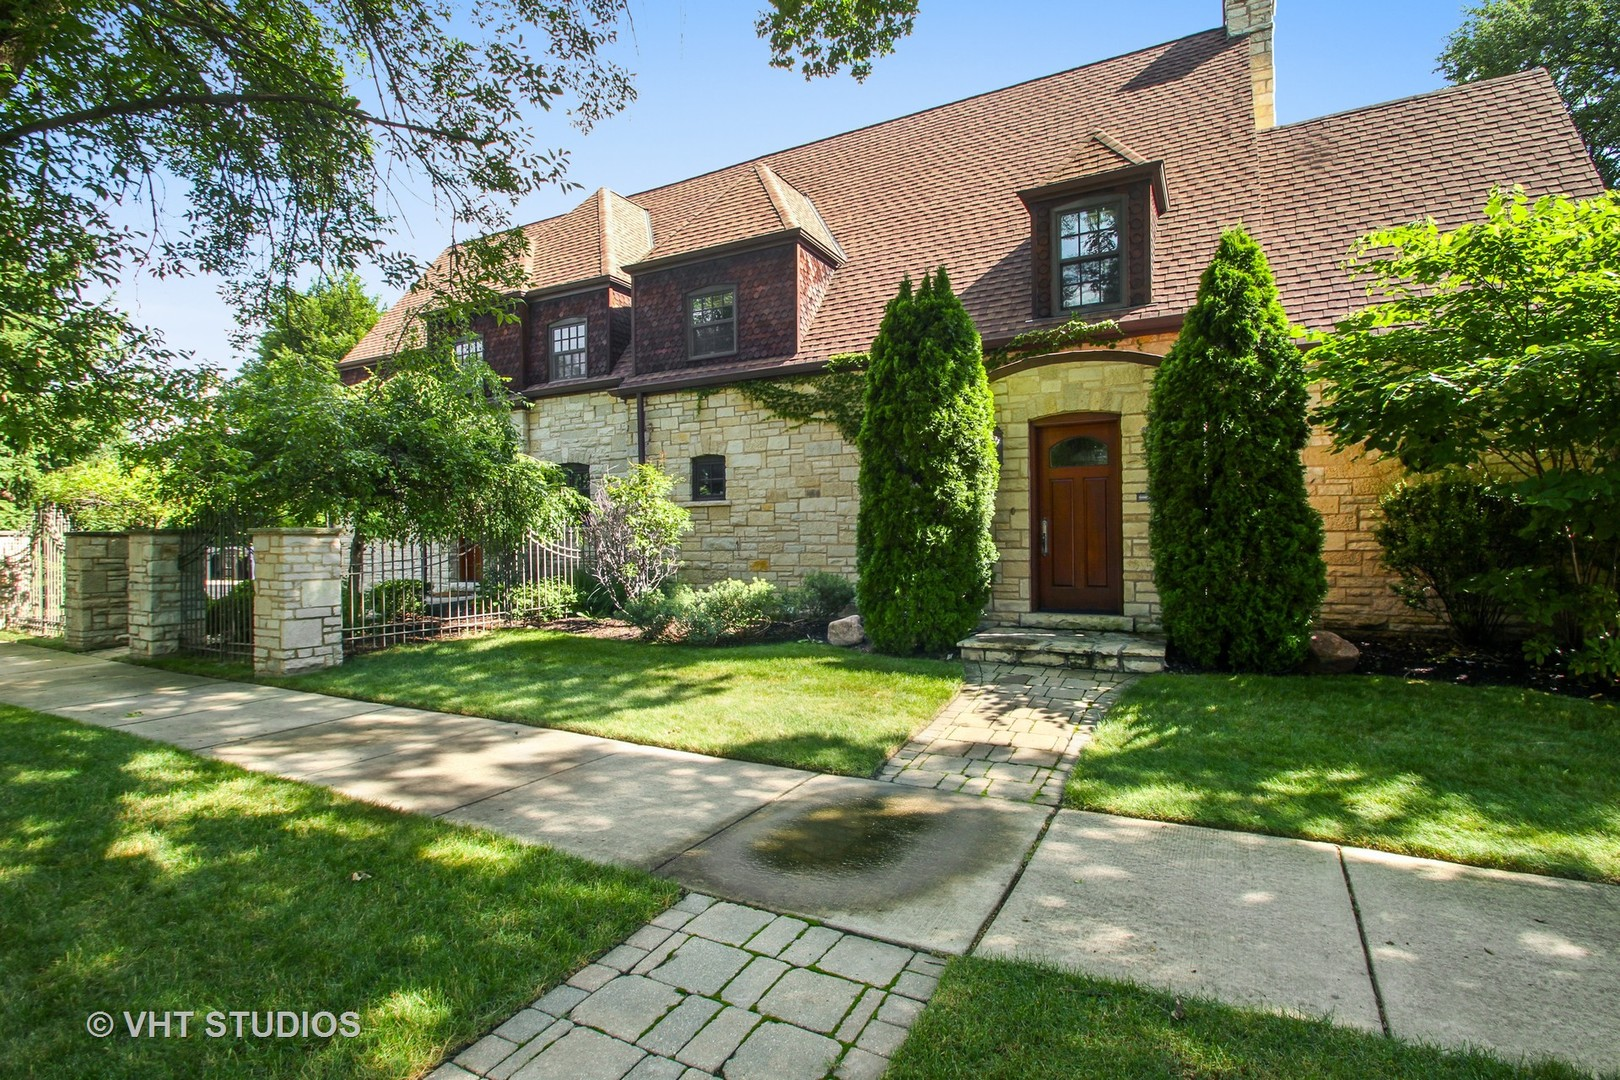 5900 NORTH KILPATRICK AVENUE, CHICAGO, IL 60646